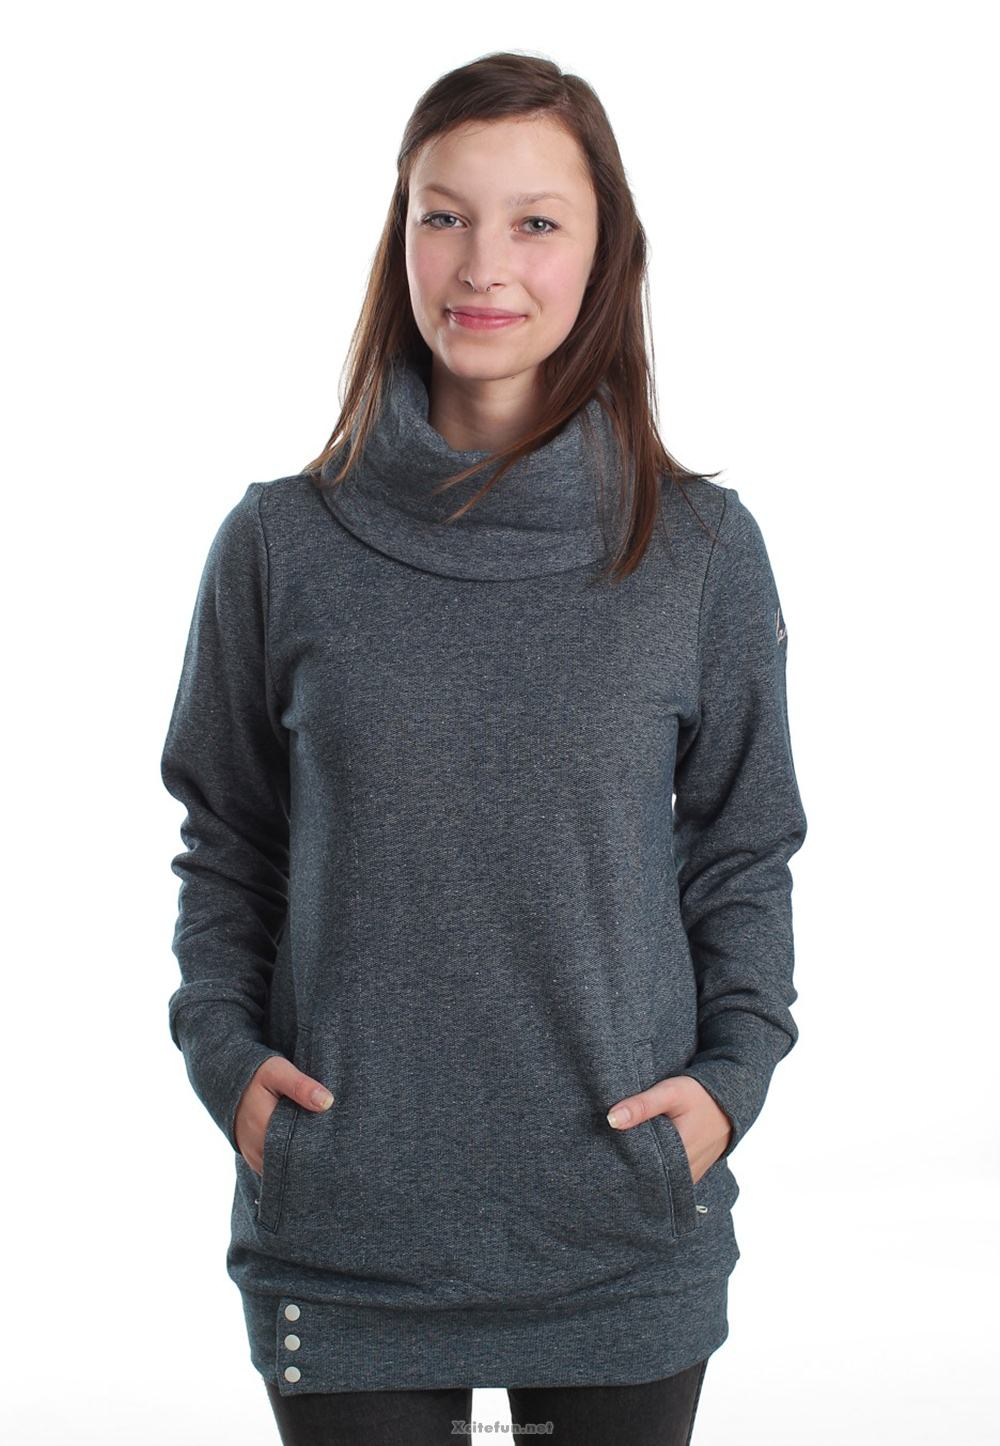 Find great deals on eBay for sweater for girls. Shop with confidence.